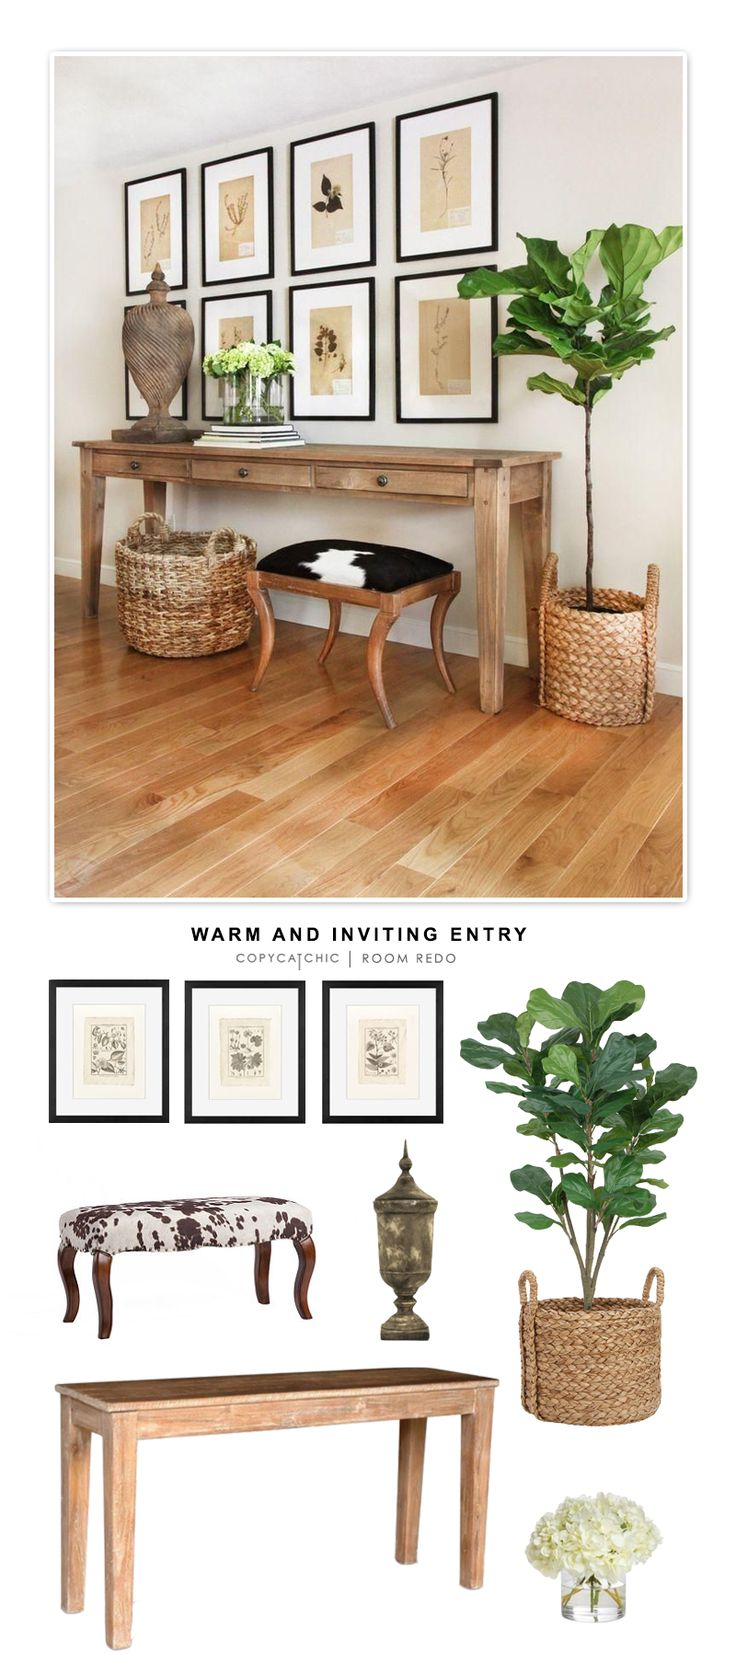 A warm and inviting entryway designed by Kelly McGuill and recreated for less than $2000 for Copy Cat Chic by @audreycdyer